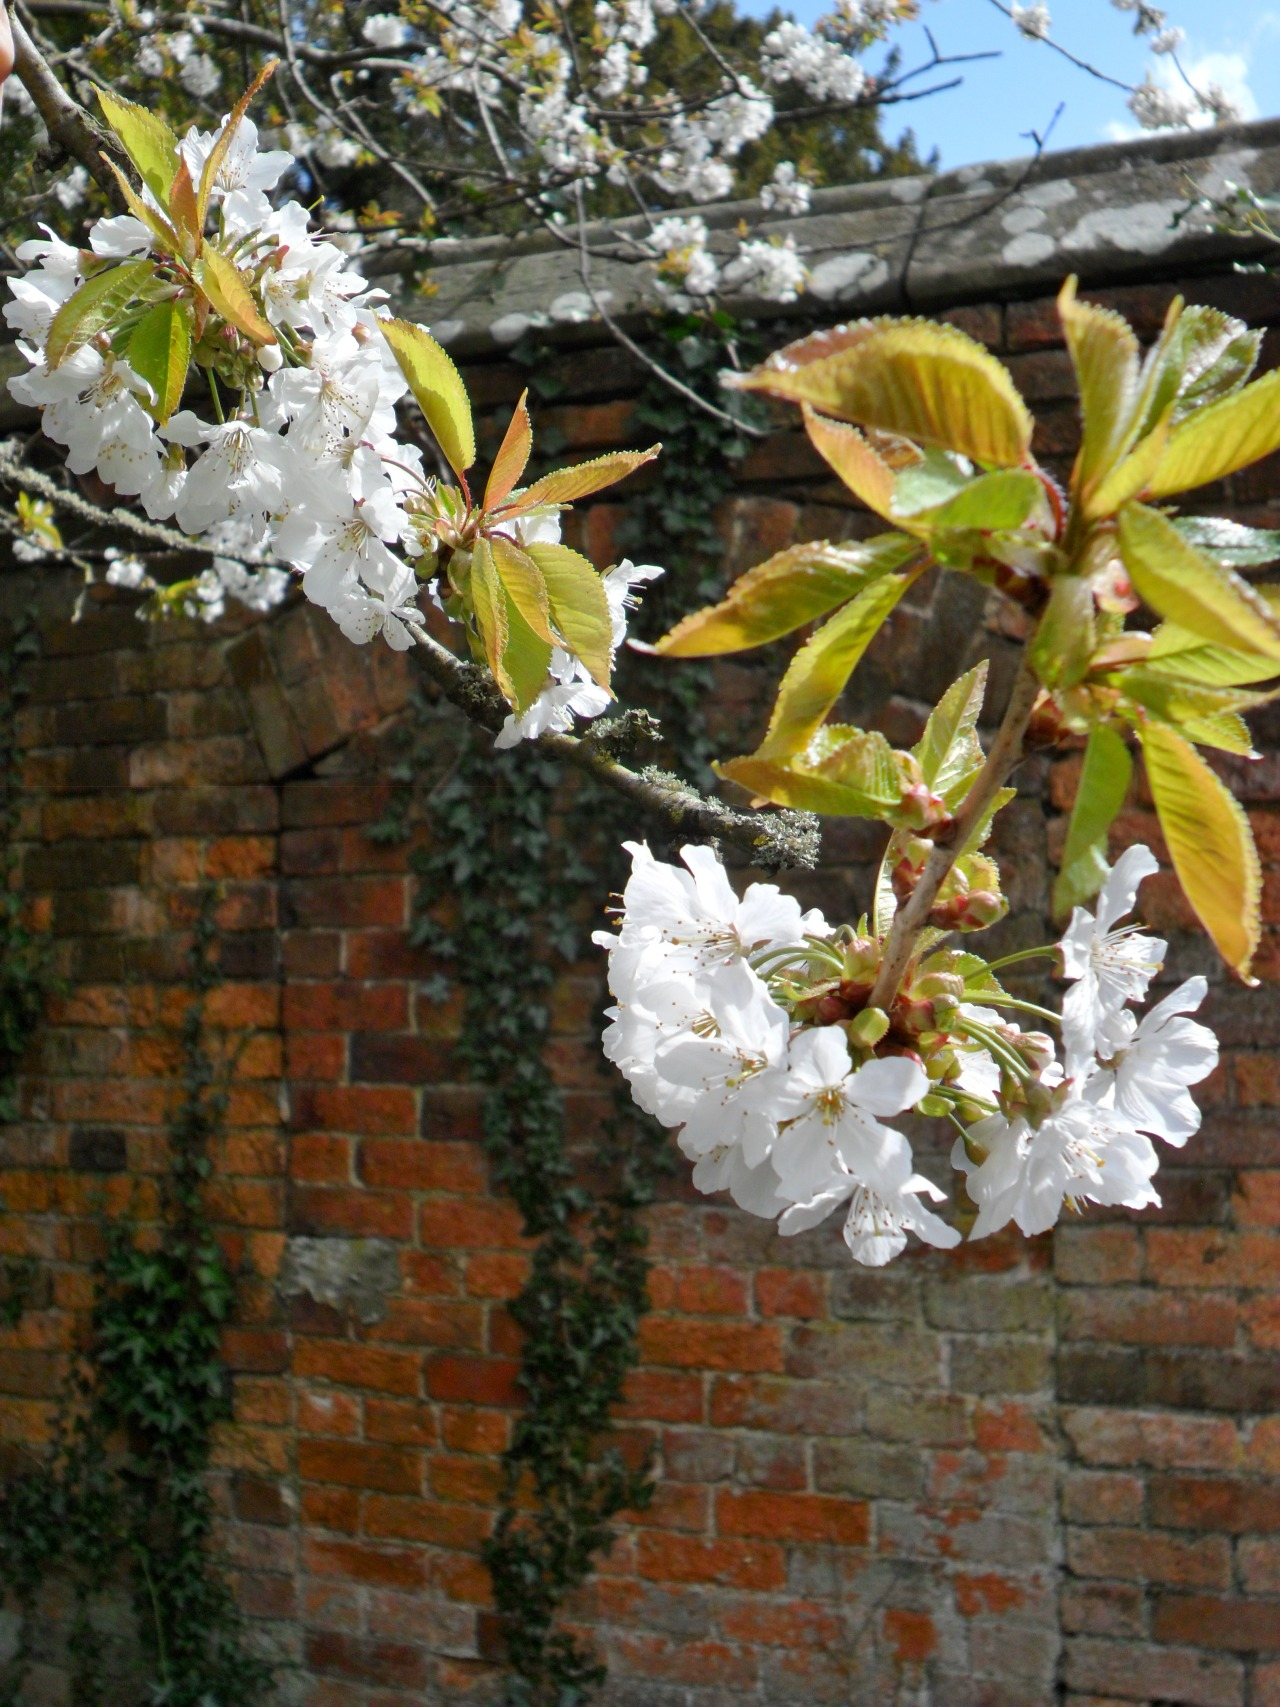 vwcampervan-aldridge:  Cherry Blossoms in the walled garden at Middleton Hall, Warwickshire, England All Original Photography by http://vwcampervan-aldridge.tumblr.com